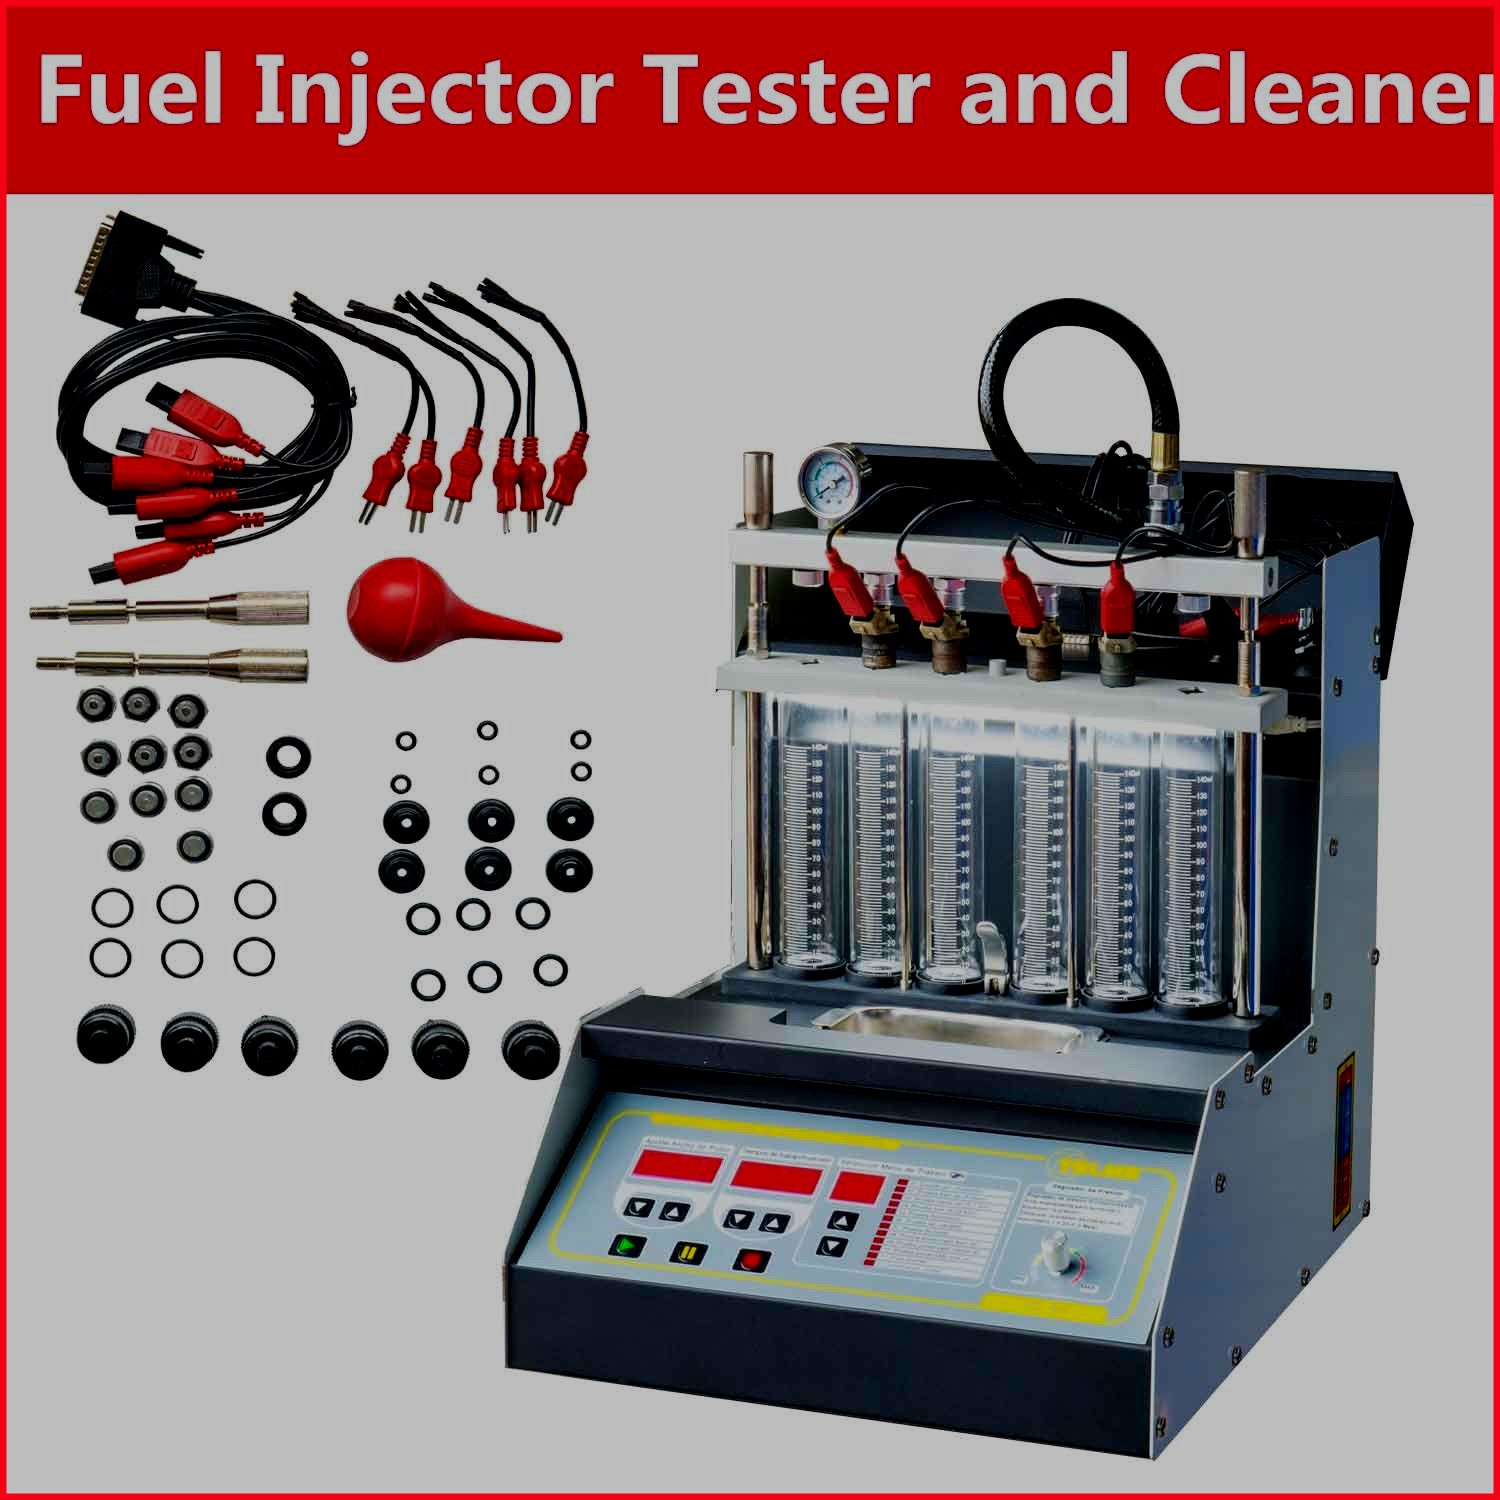 Injector Cleaner Injection Tester Ultrasonic Car Motorcycle Vehicle Automotive Tools And Accessories - House Deals